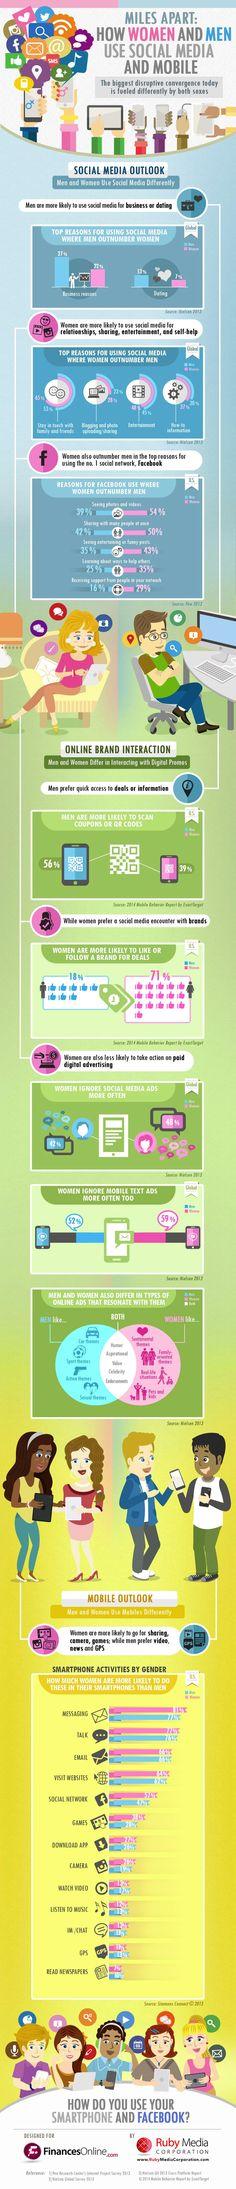 How Men and Women Use Mobile and Social Media Differently #Infographic | via #BornToBeSocial - Pinterest Marketing